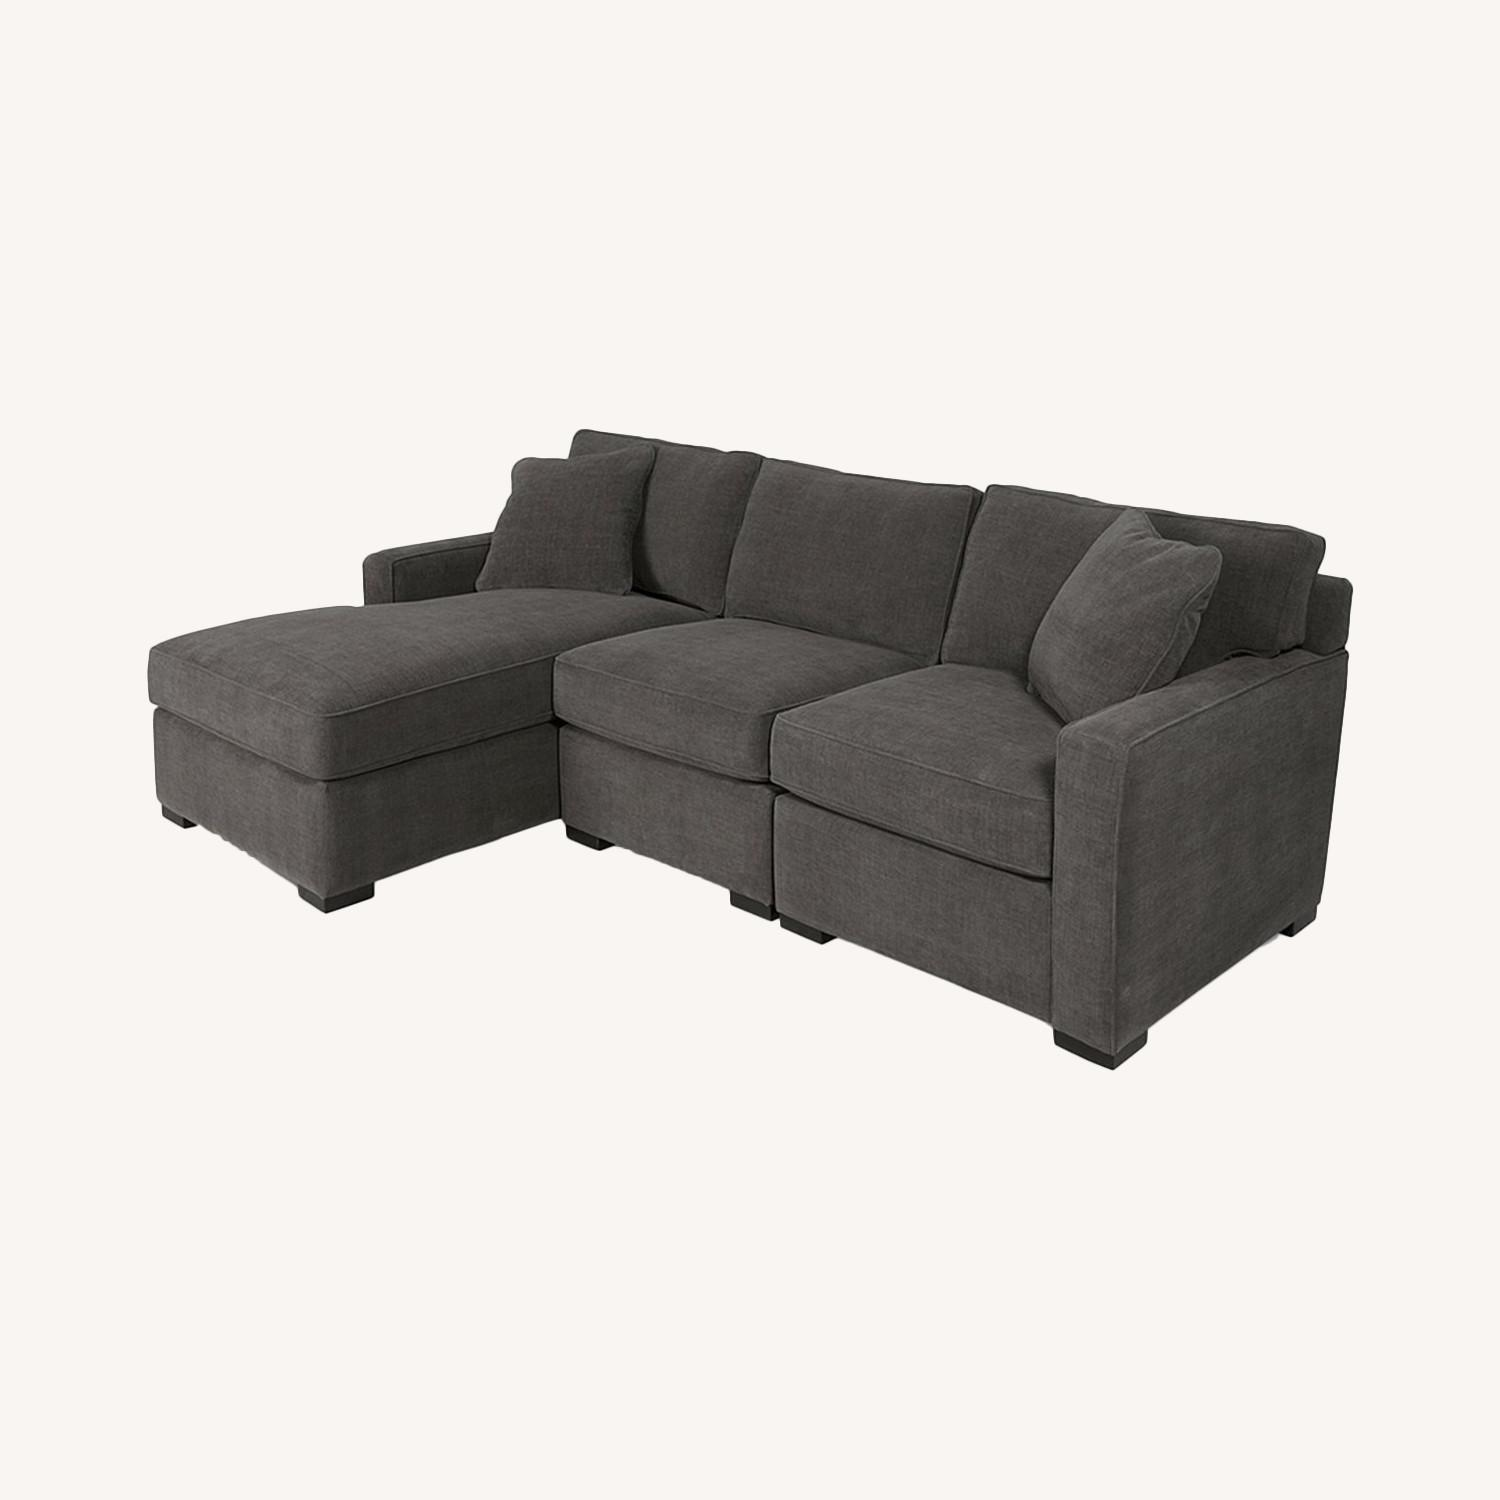 Macy's 3 Piece Sectional Sofa with Chase - image-0